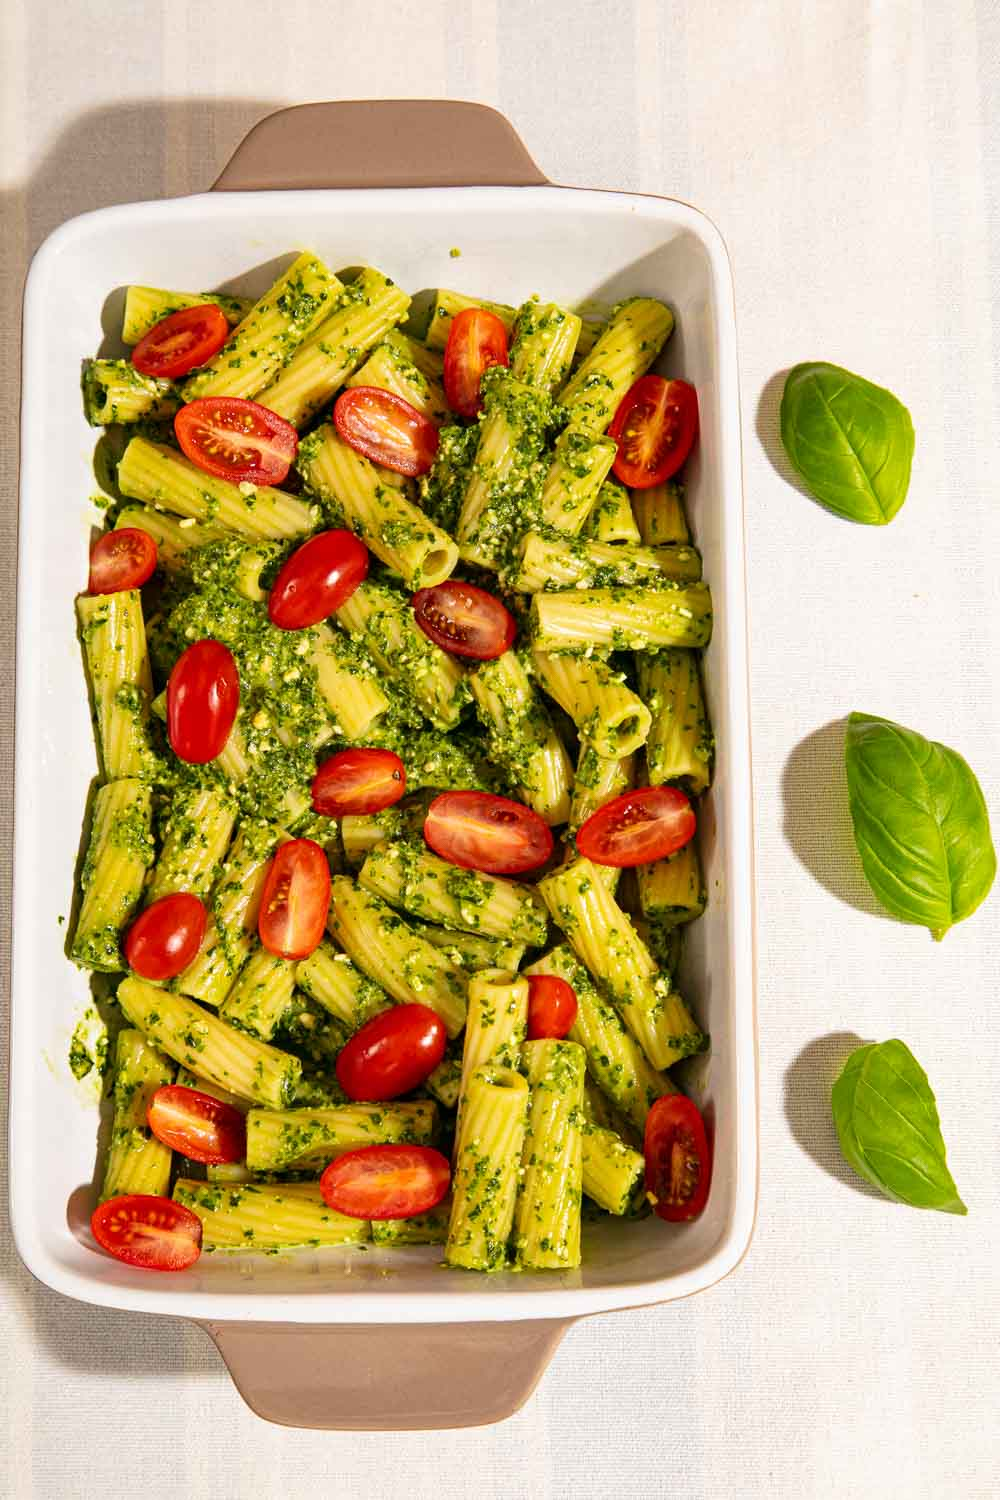 Pesto pasta Bake topped with tomatoes, ready for the oven.